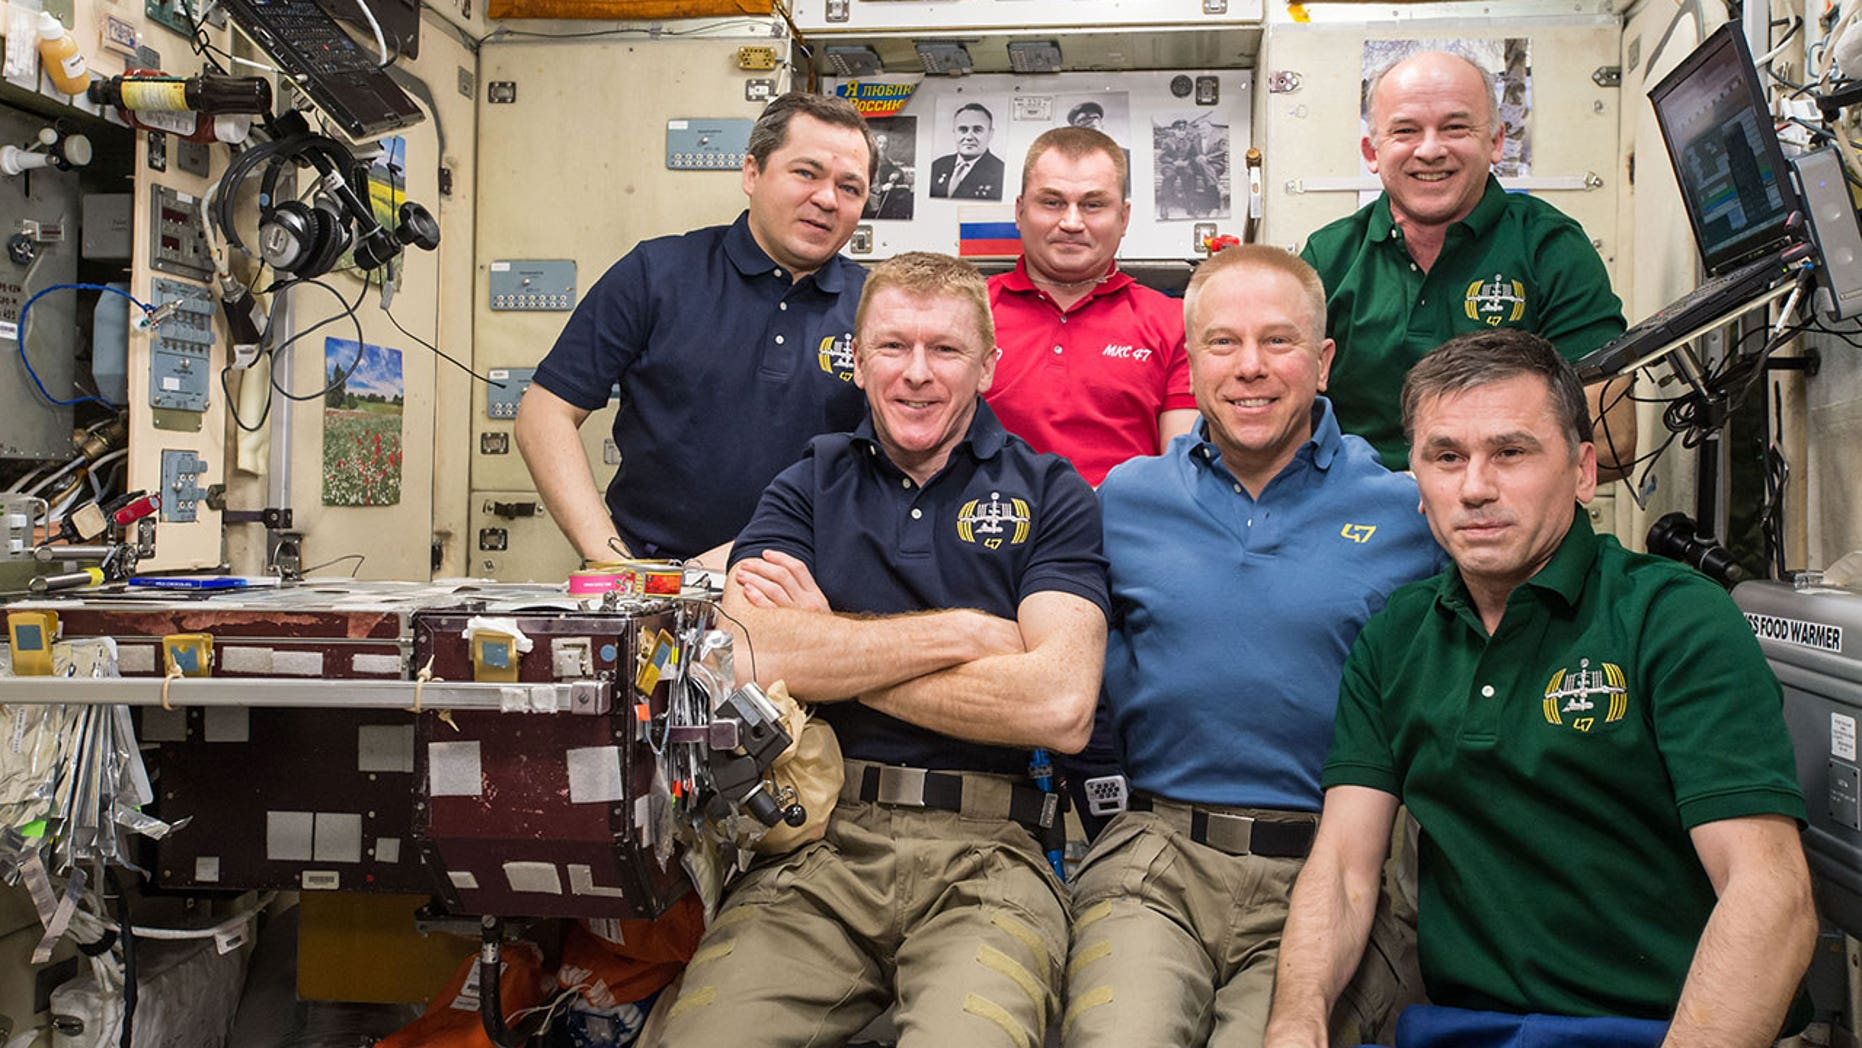 The Expedition 47 crew poses for the three millionth image taken aboard the International Space Station on April 30, 2016.